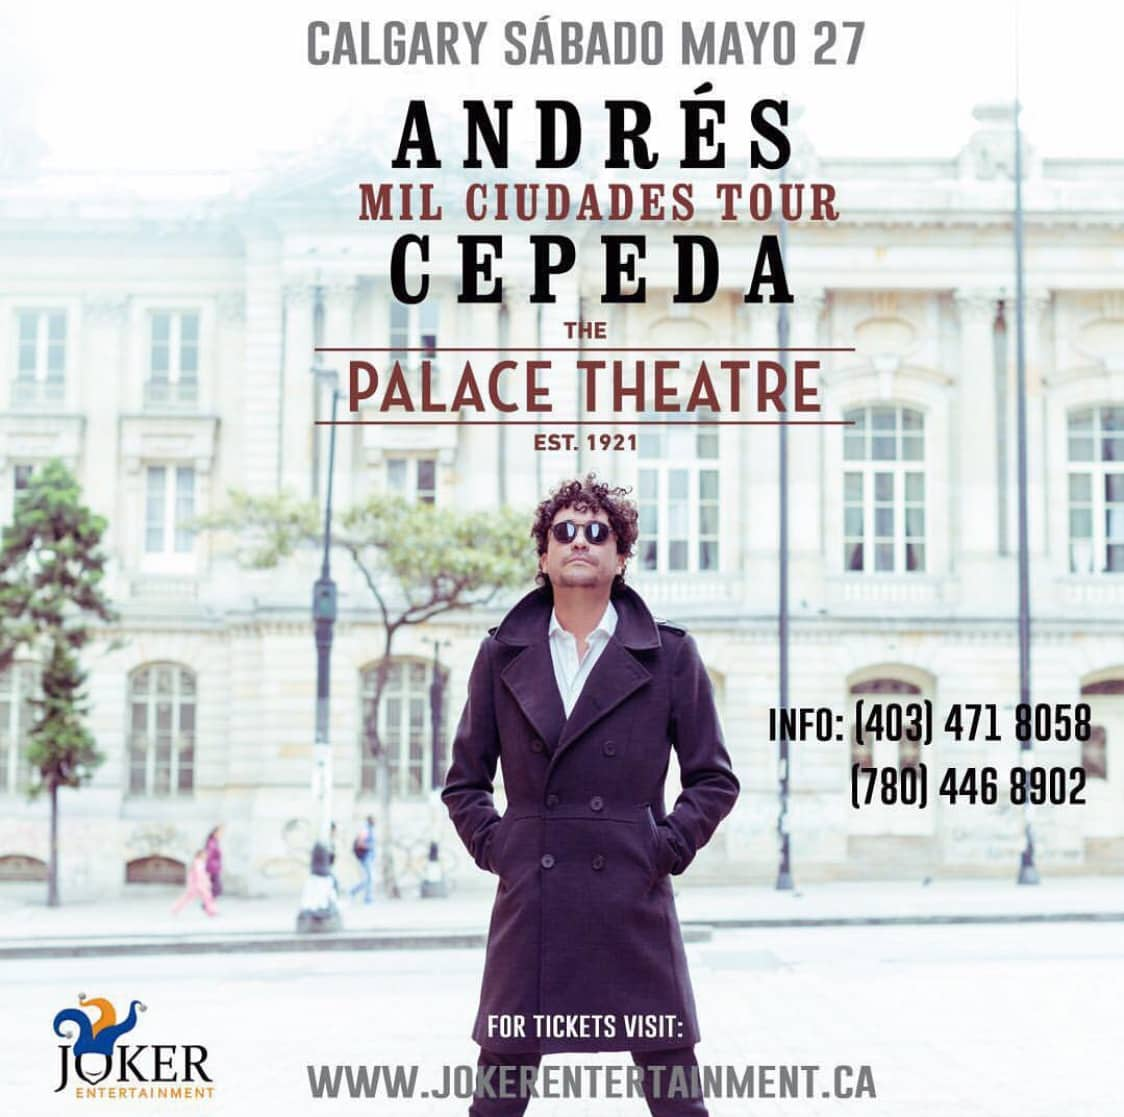 Andrés Cepeda Concert Tickets & Calgary Tour May 27, 2017